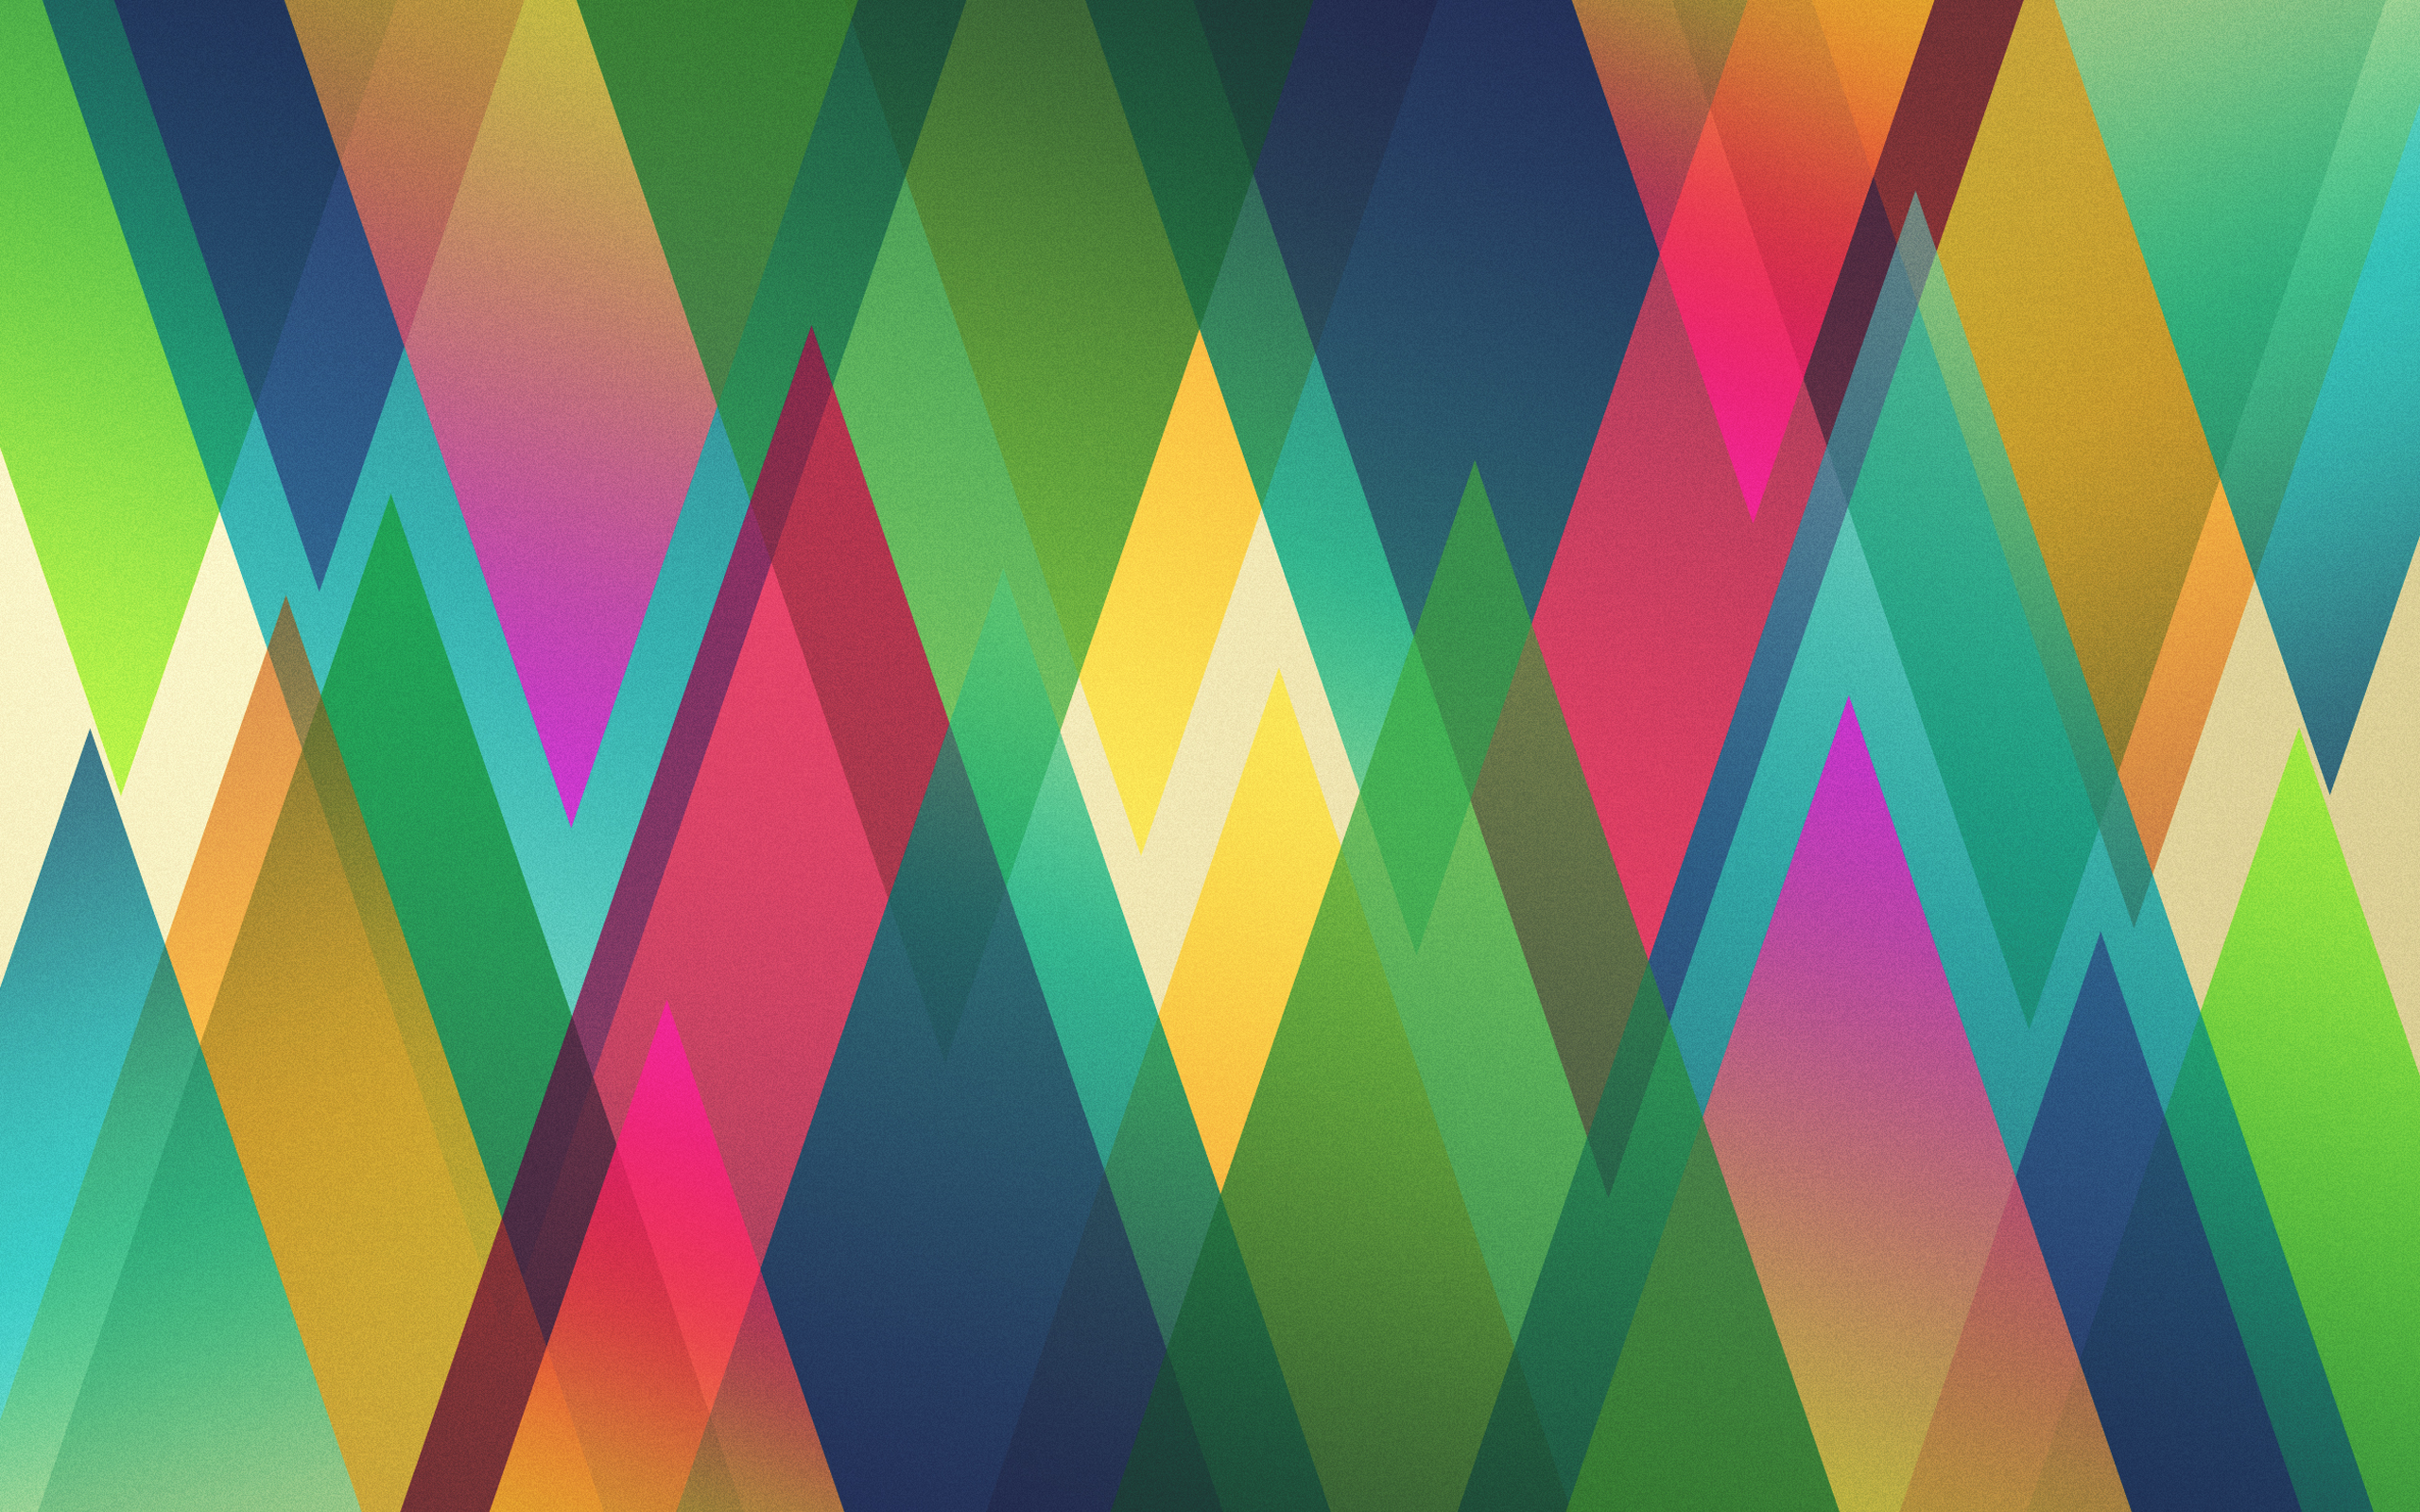 Harlequin by HeskinRadiophonic, triangles, diamonds, abstract, digital art, colors, angles